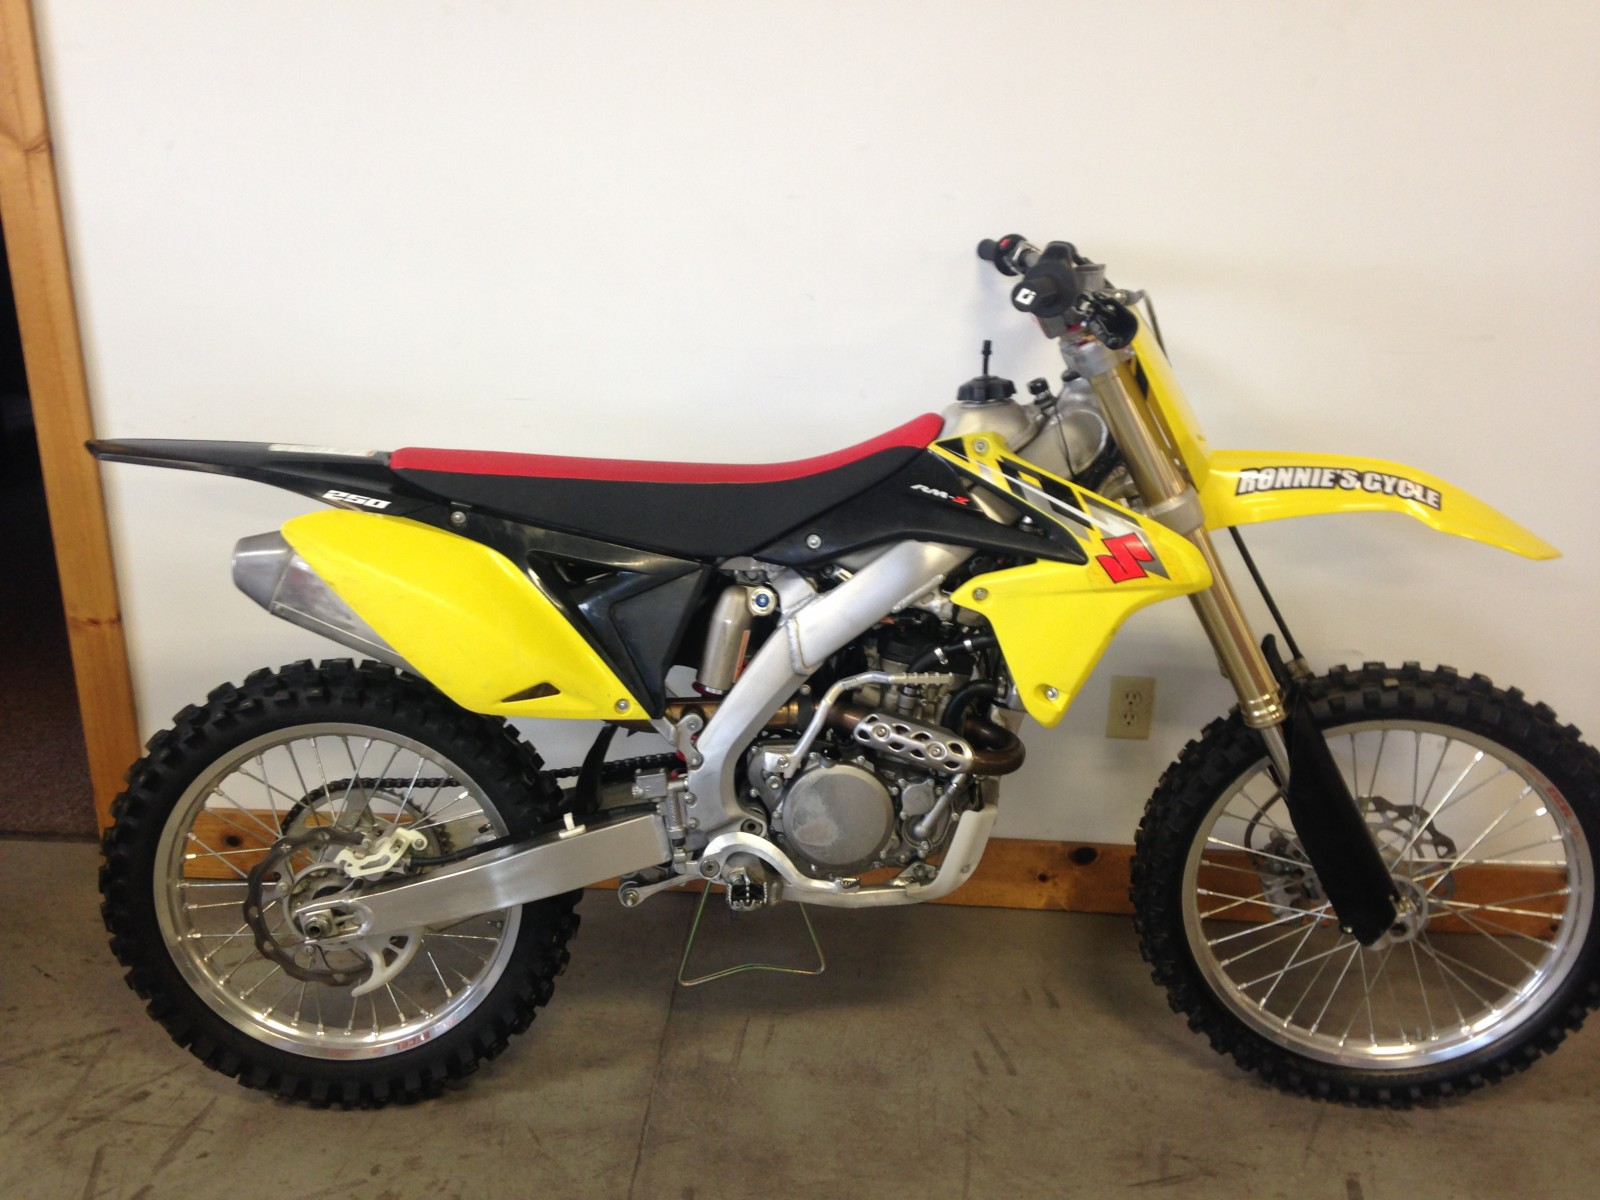 2014 suzuki rmz 250 for sale on ryno classifieds. Black Bedroom Furniture Sets. Home Design Ideas